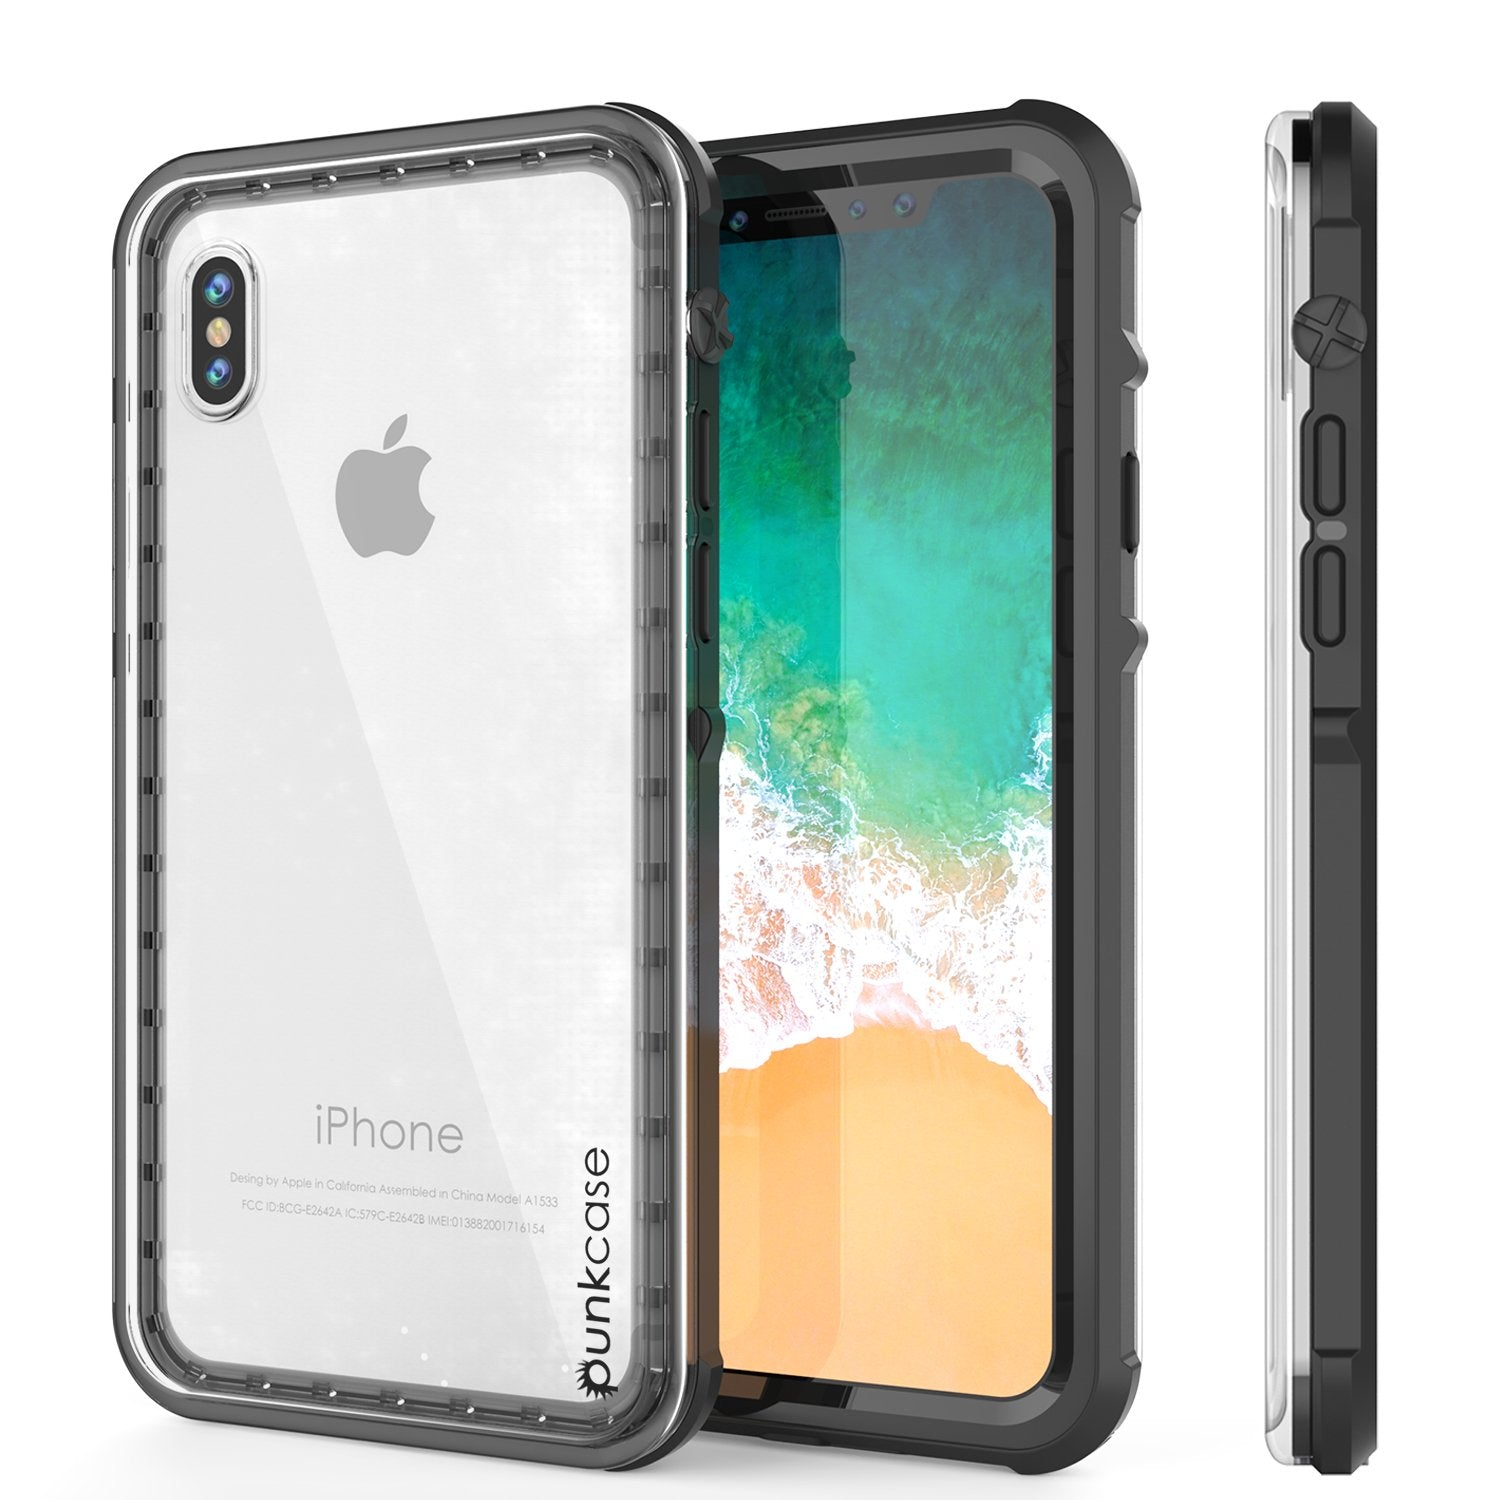 iPhone X Case, PUNKCase [CRYSTAL SERIES] Protective IP68 Certified Cover [BLACK] - PunkCase NZ